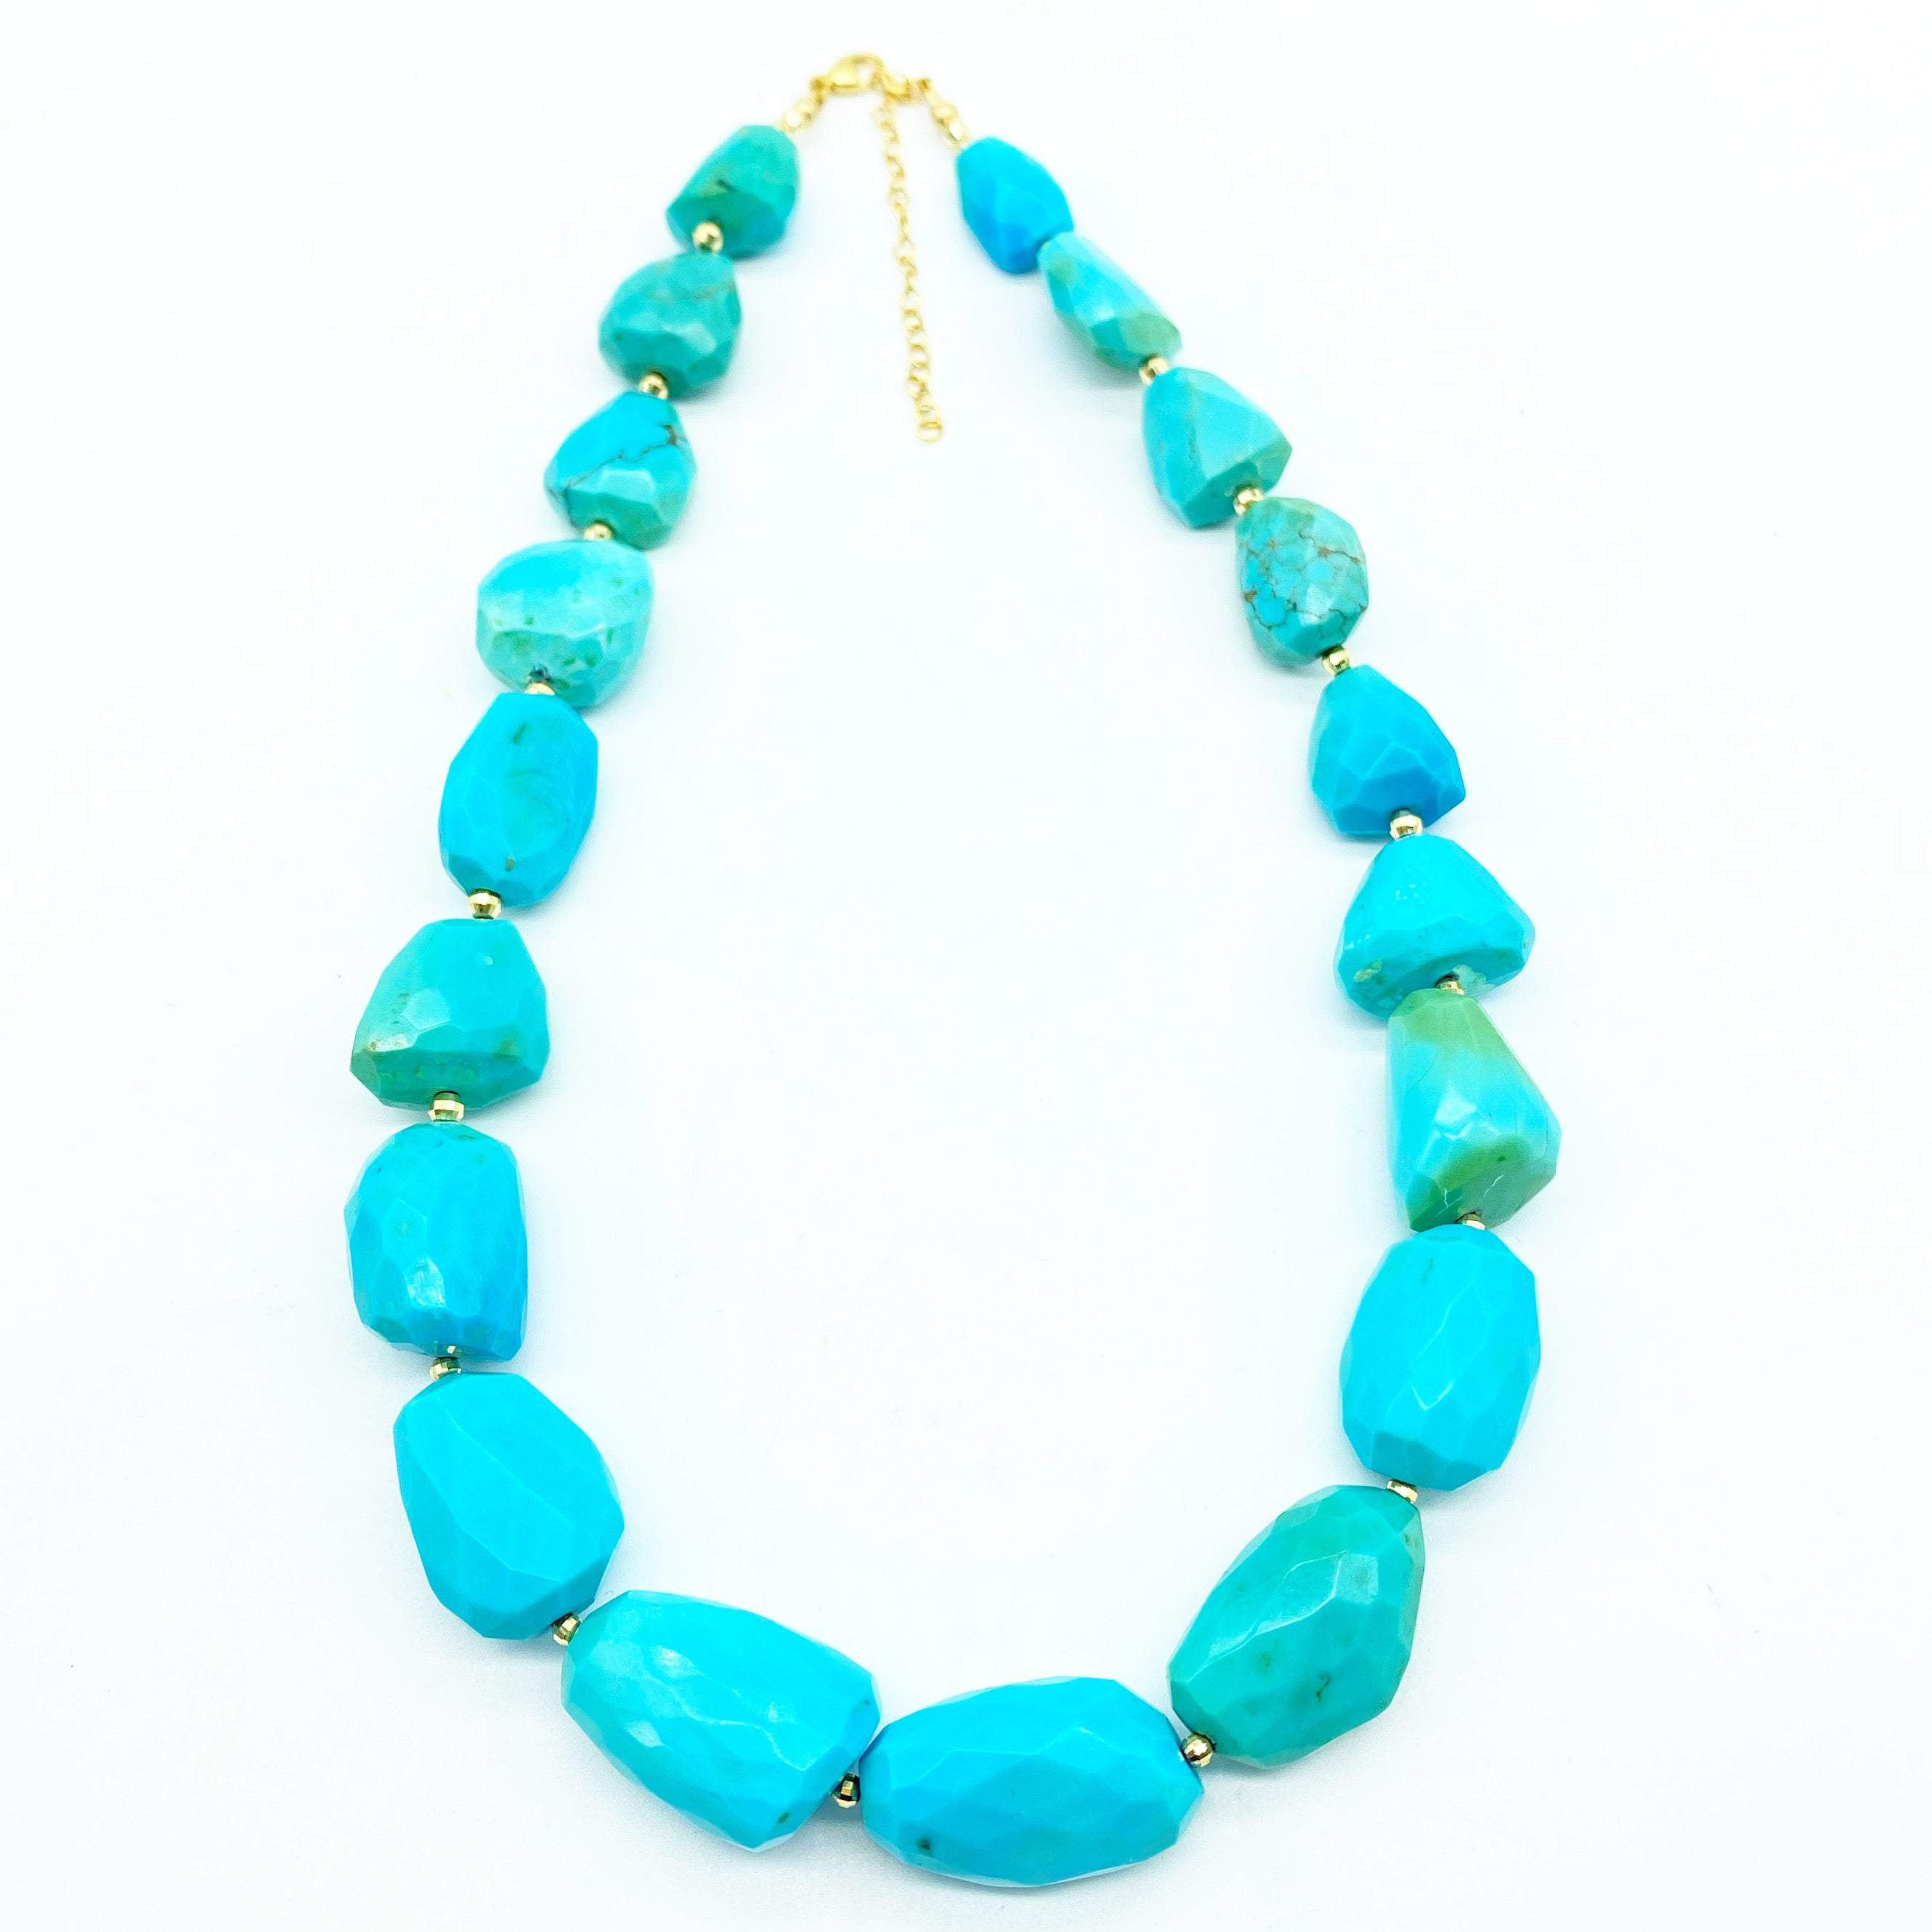 ONE OF A KIND SLEEPING BEAUTY TURQUOISE NECKLACE